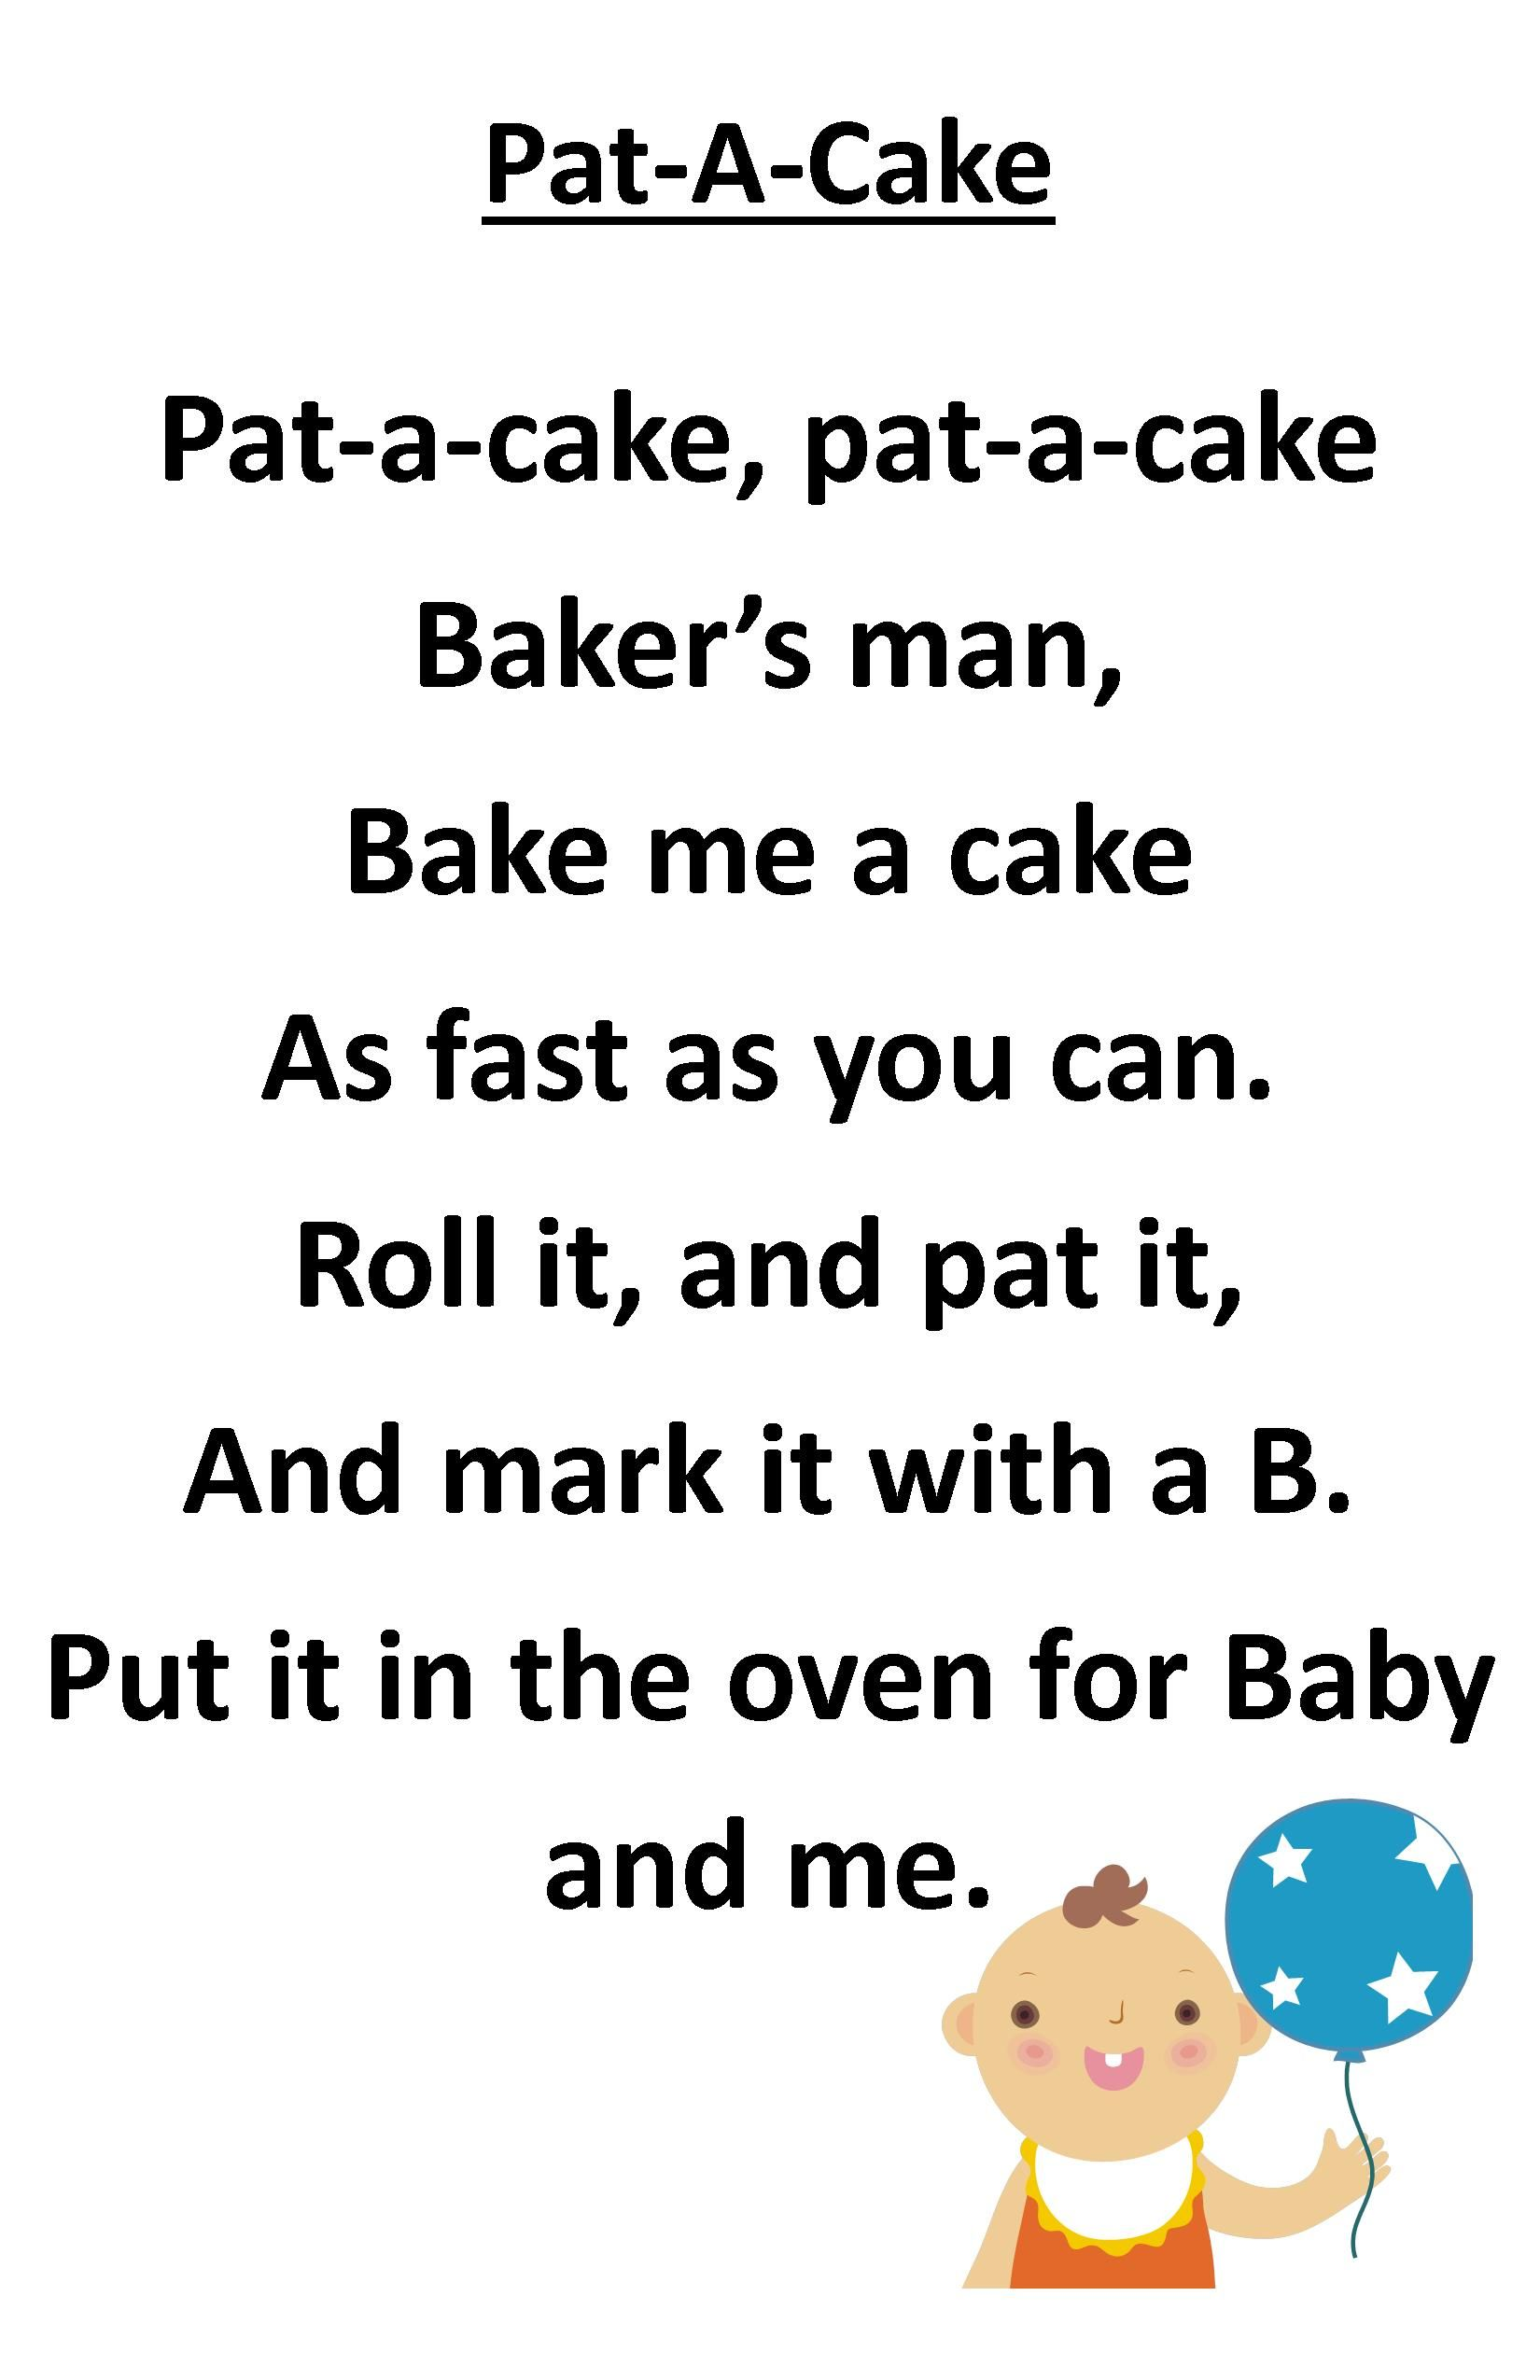 Baby Children Nursery Rhyme Song Drop In Storytime Rhyme Pat A Cake Itty Bitty